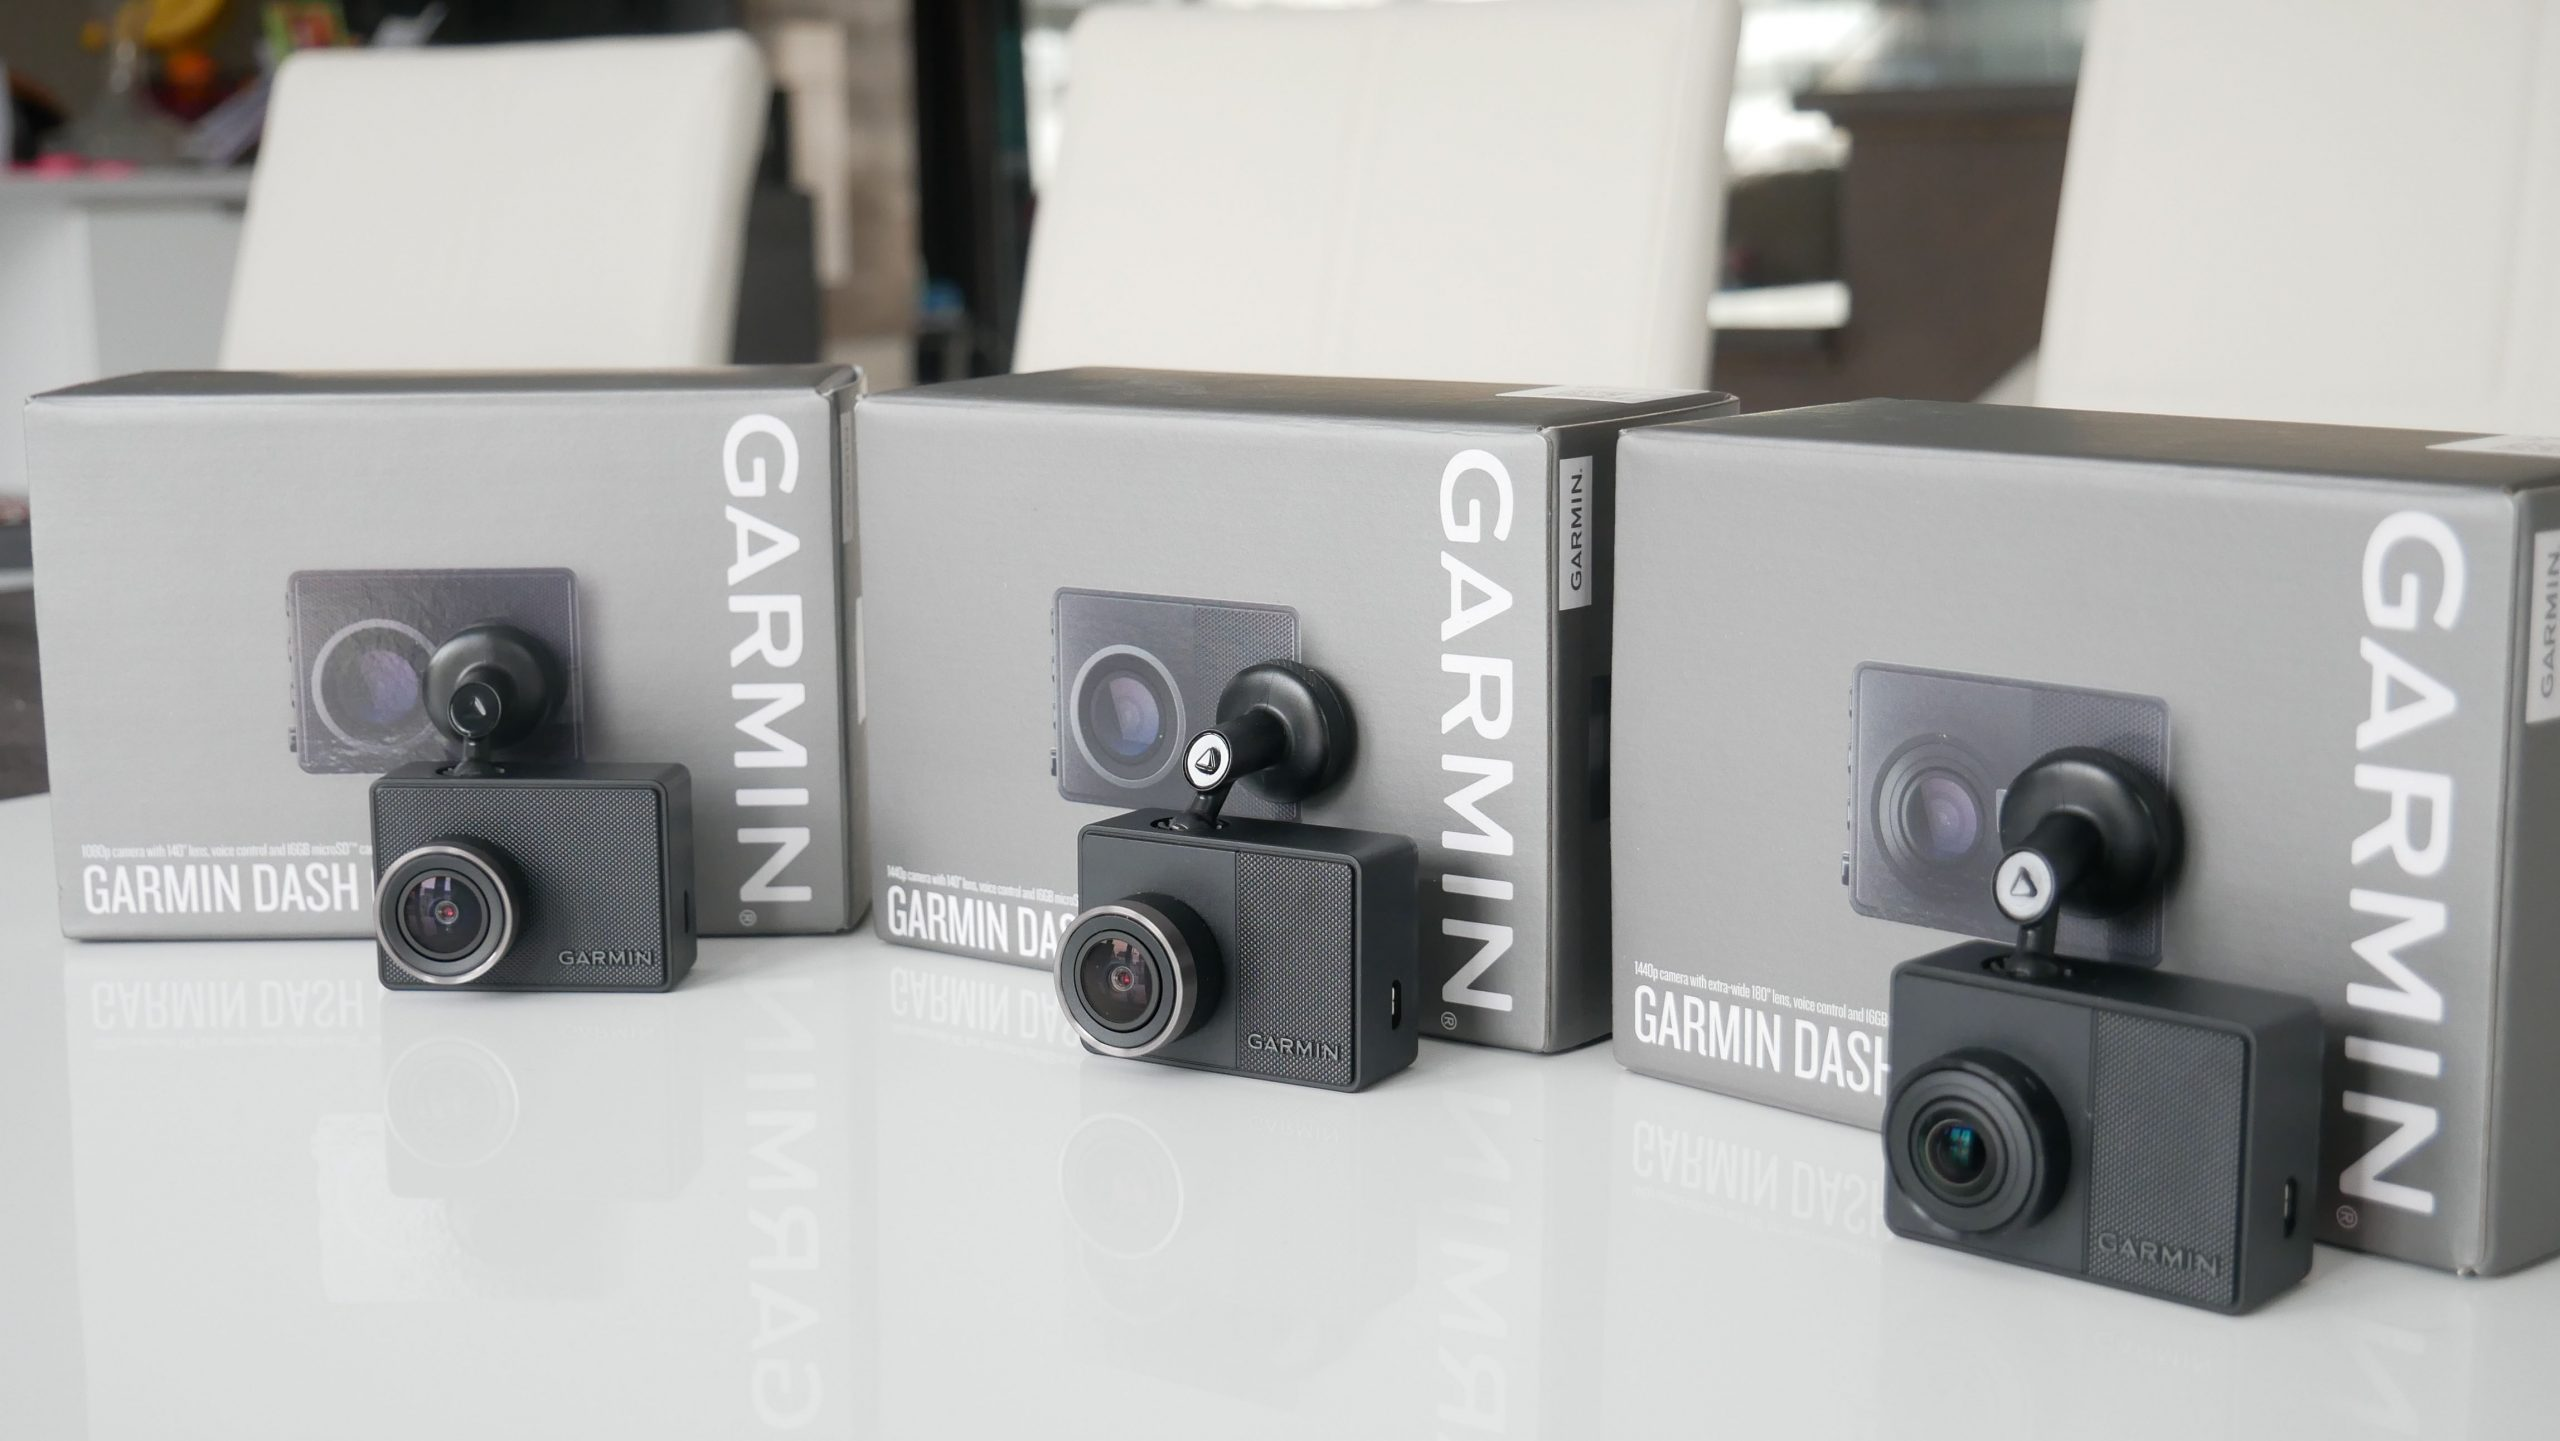 Image of 47,57 and 67W Dashcam from Garmin